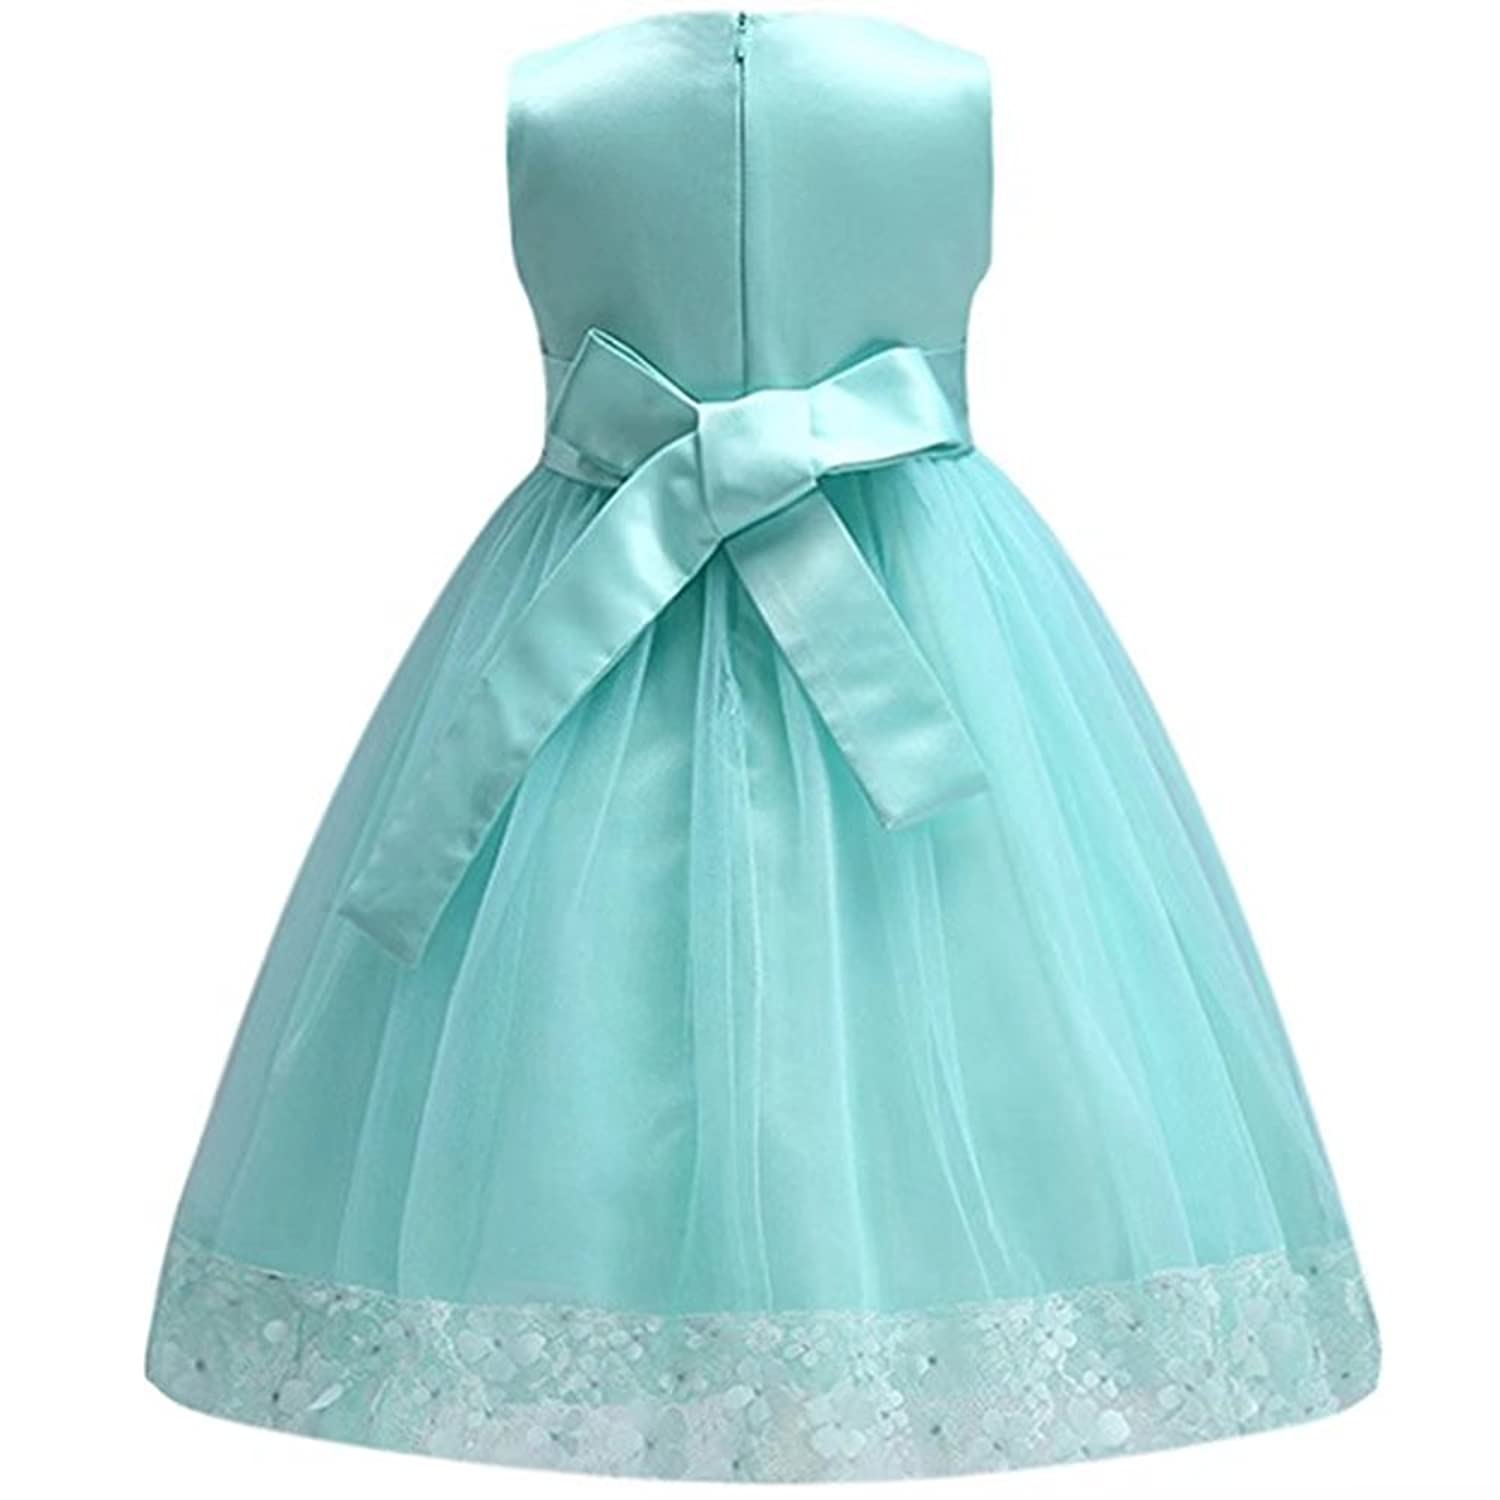 Amazon.com: ZaH Girls Elegant Ball Gown Lace Dress for Party: Clothing